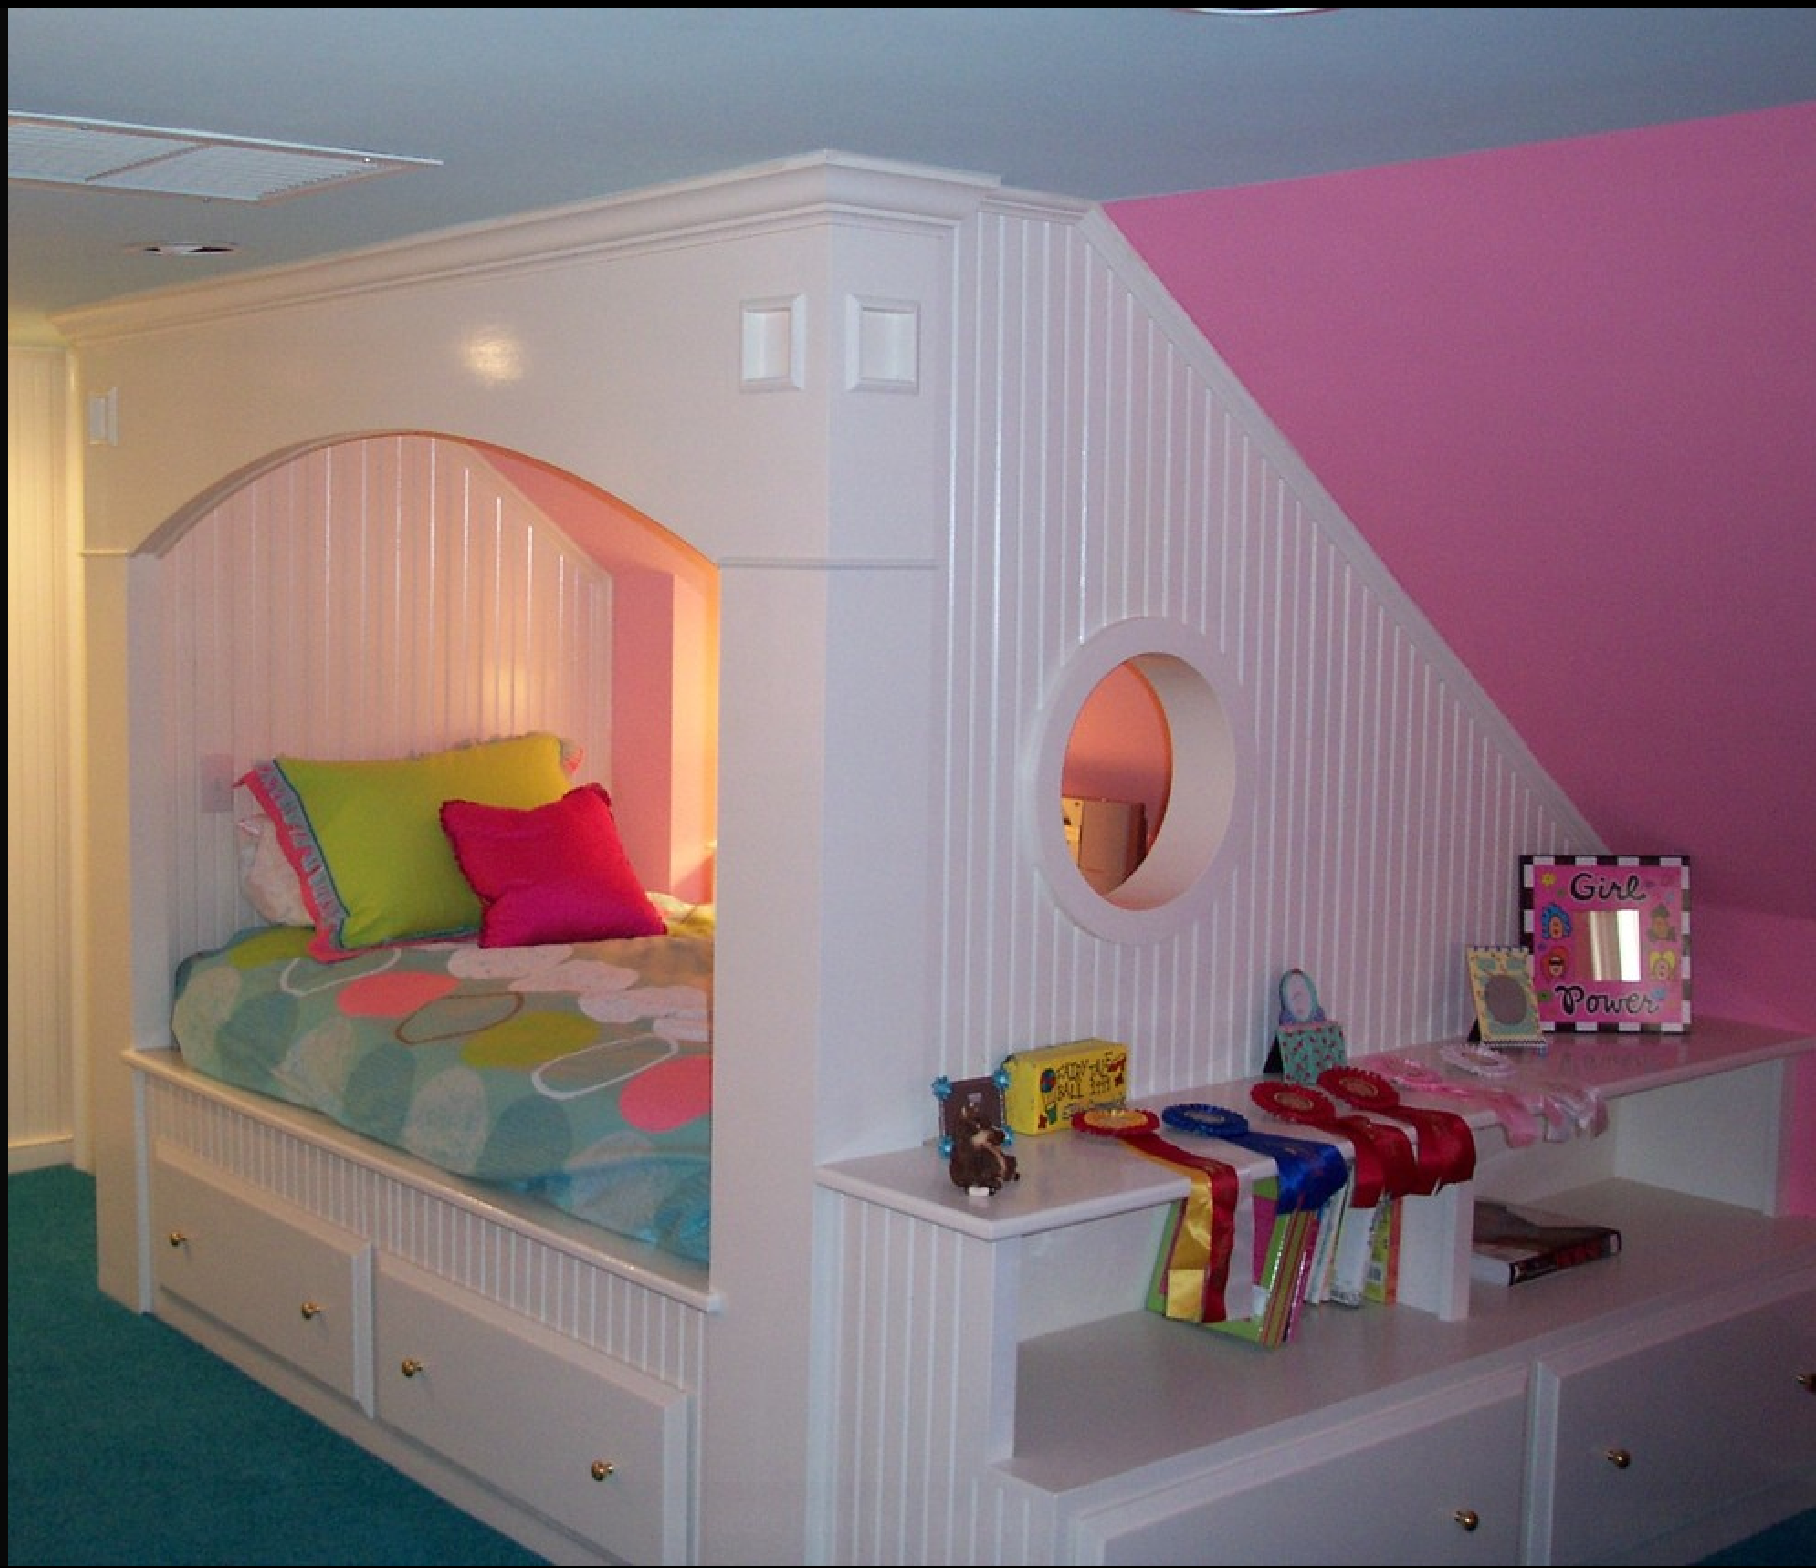 Lovely shaped cupboard bed port hole window opening for Cupboard models for bedroom